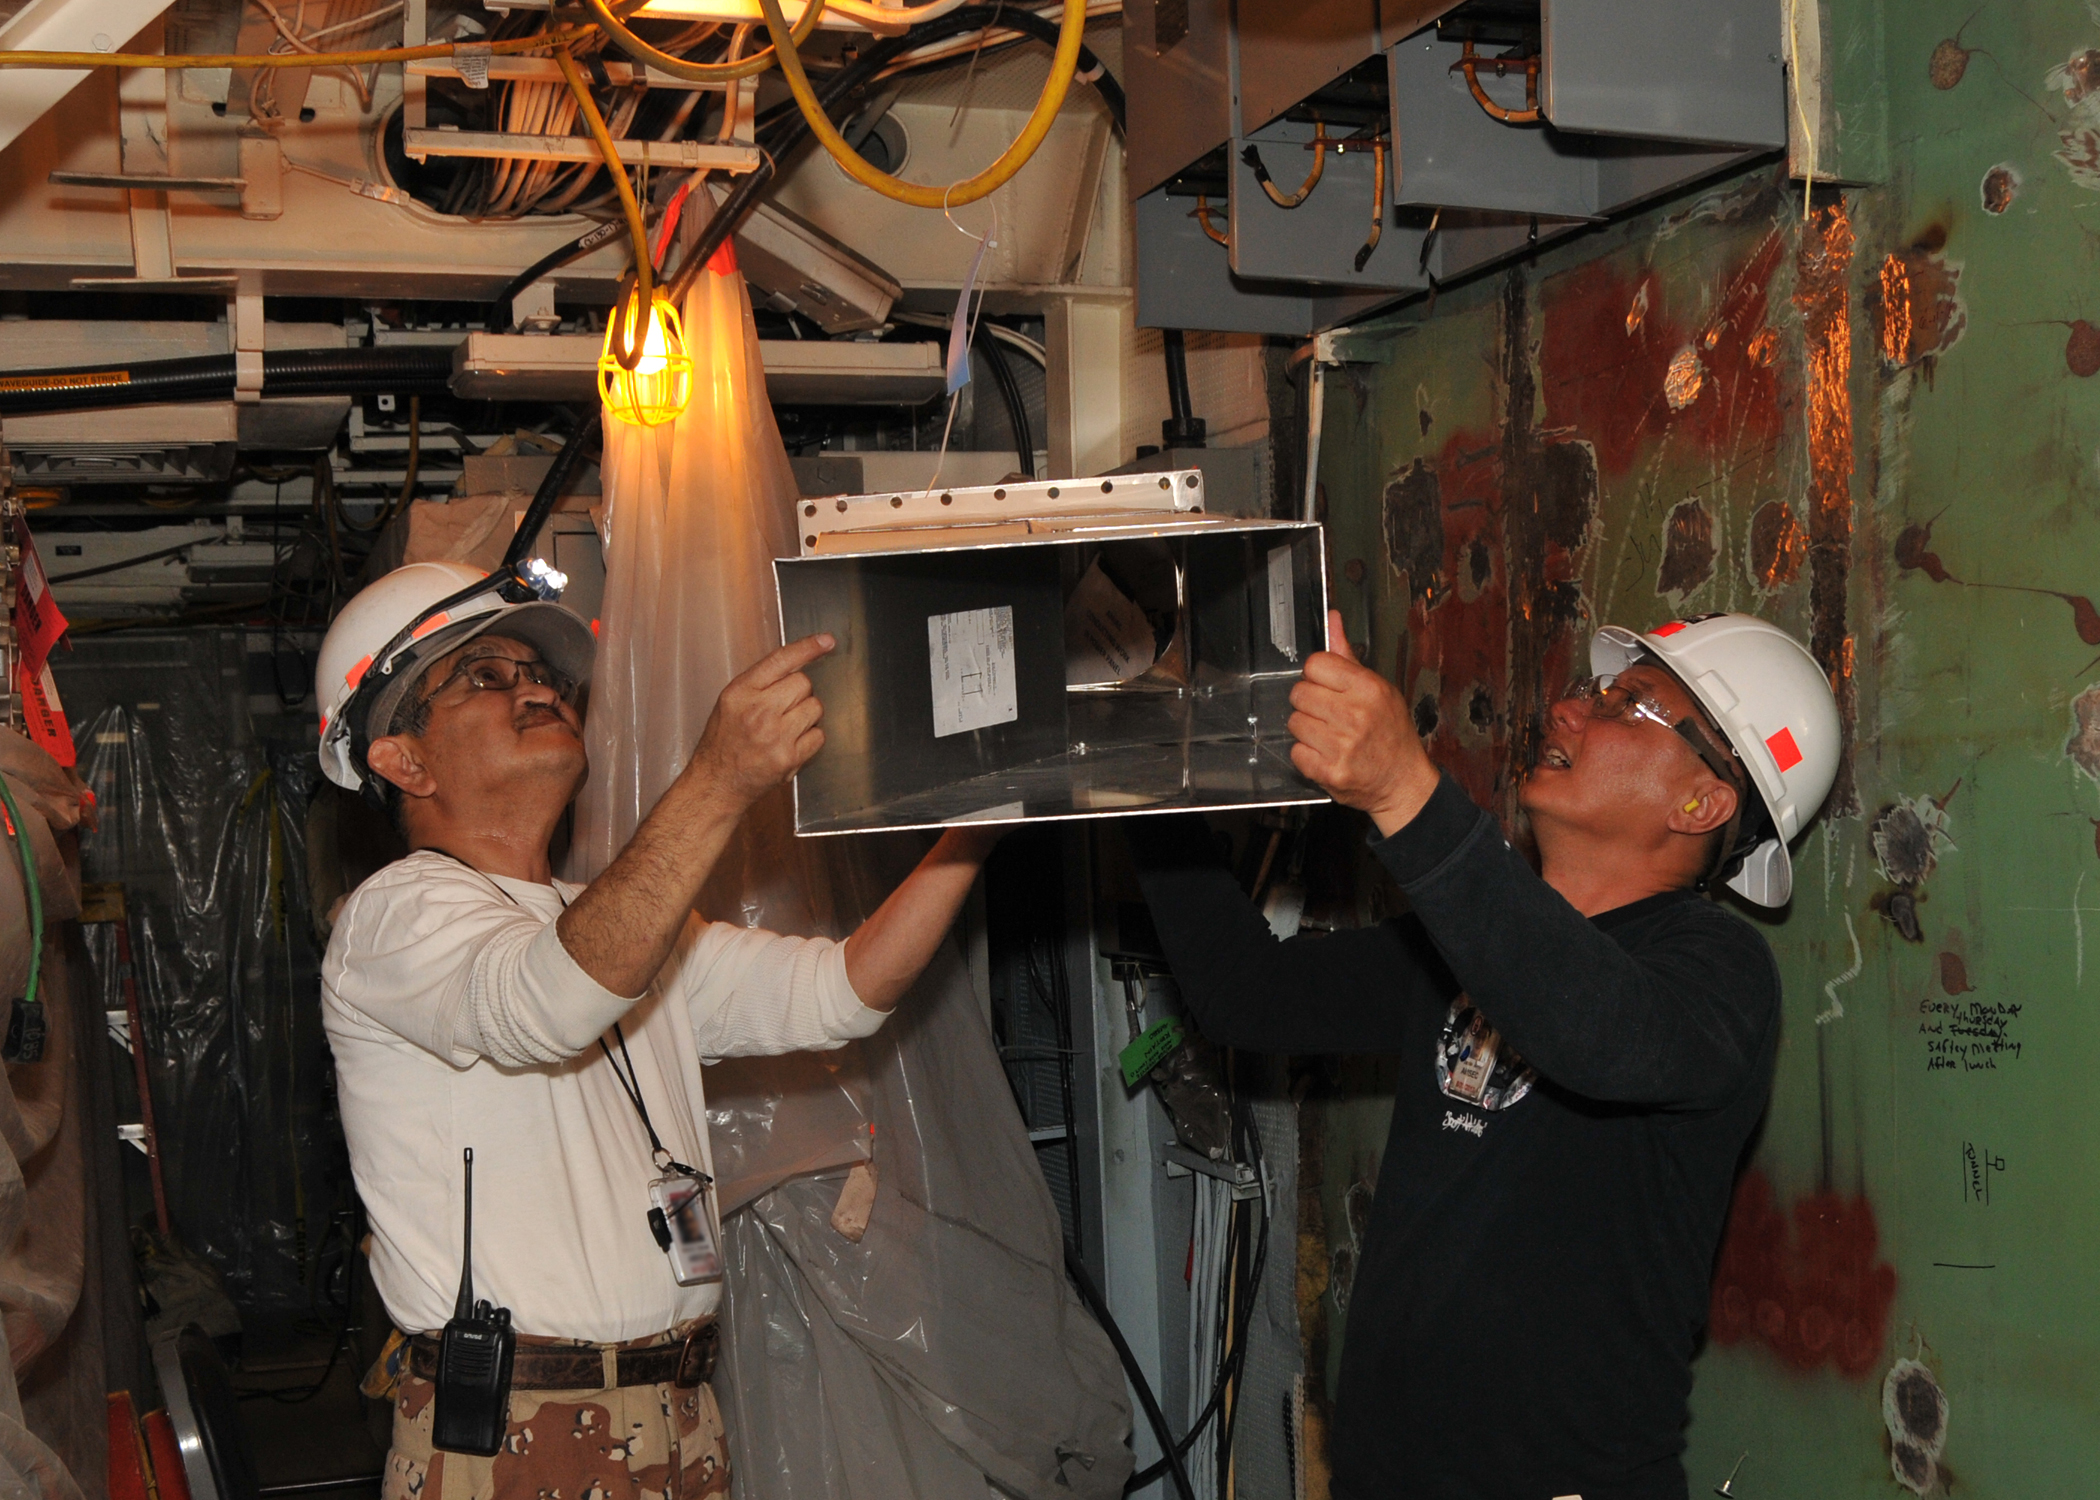 AMSEC contractors remove ventilation in the radio room onboard the Navy guided missile destroyer USS Milius (DDG 69) in March 2013. US Navy photo.